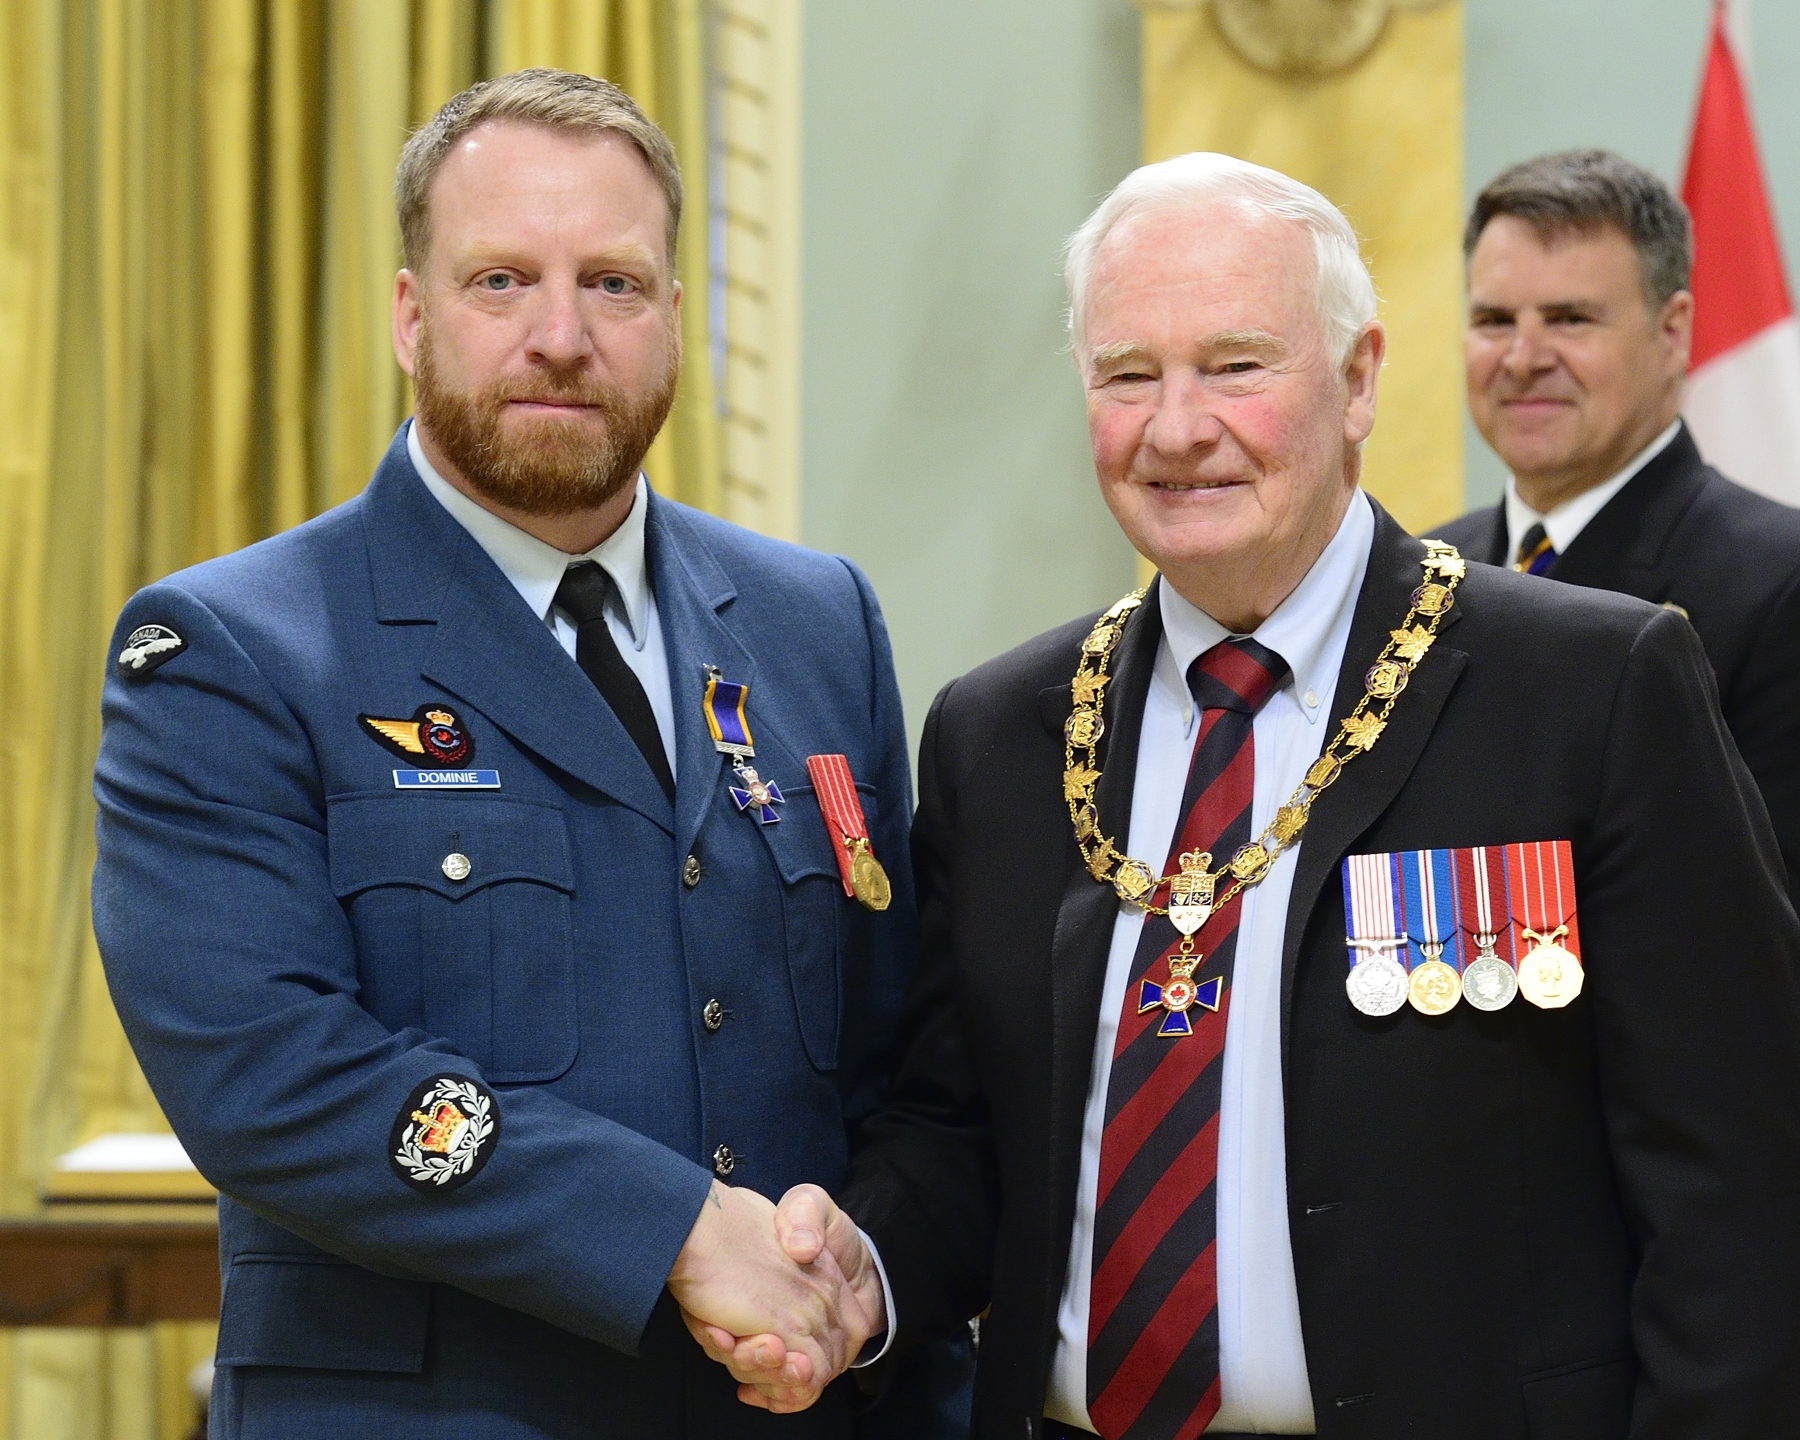 Governor General and Commander-in-Chief of Canada David Johnston presents the Order of Military Merit to Warrant Officer Winston Wade Dominie, MMM, CD, from 8 Air Communications and Control Squadron, Astra, Ontario. PHOTO: Sergeant Johanie Mahieu, Rideau Hall ©, GG05-2017-0075-038-dominie